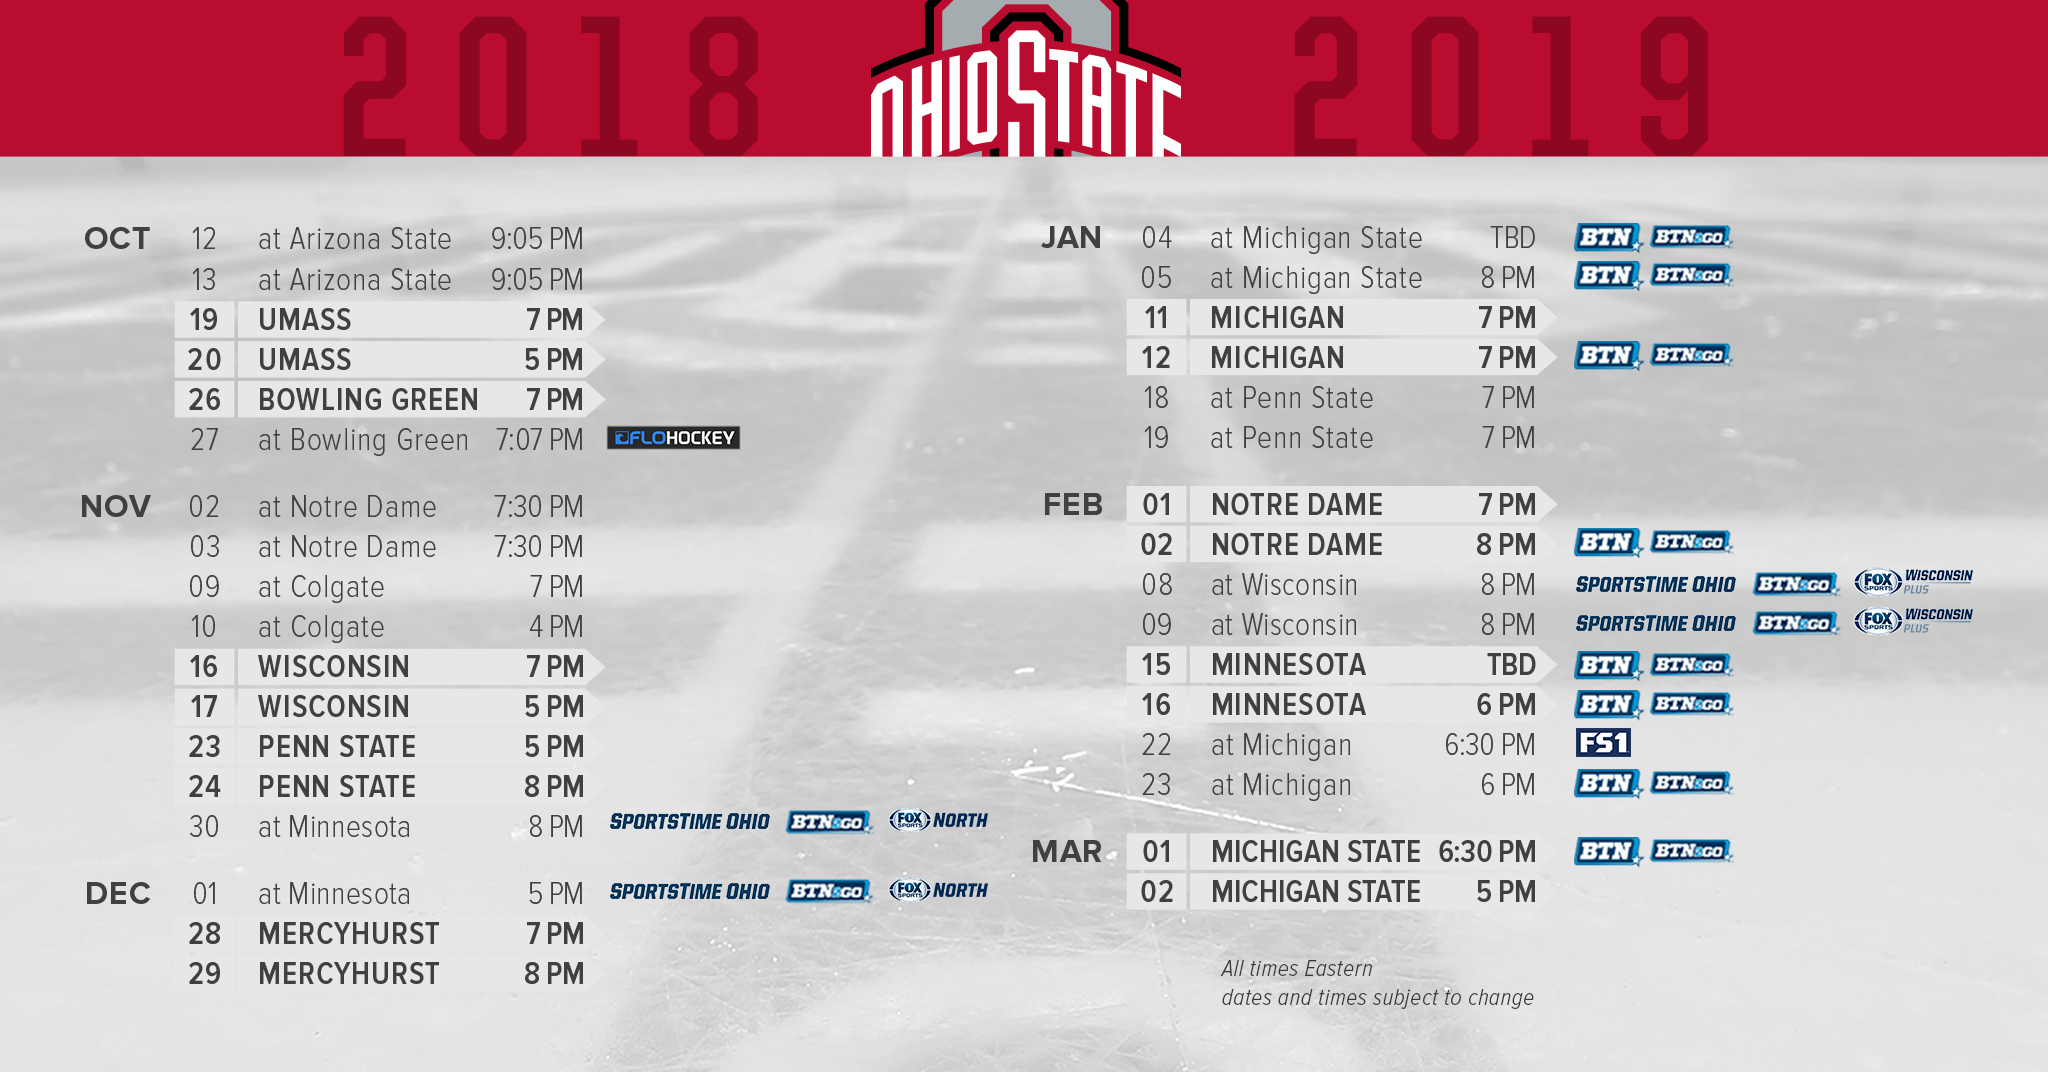 graphic relating to Kentucky Basketball Schedule Printable named Buckeyes Broadcast Agenda Introduced Ohio Country Buckeyes